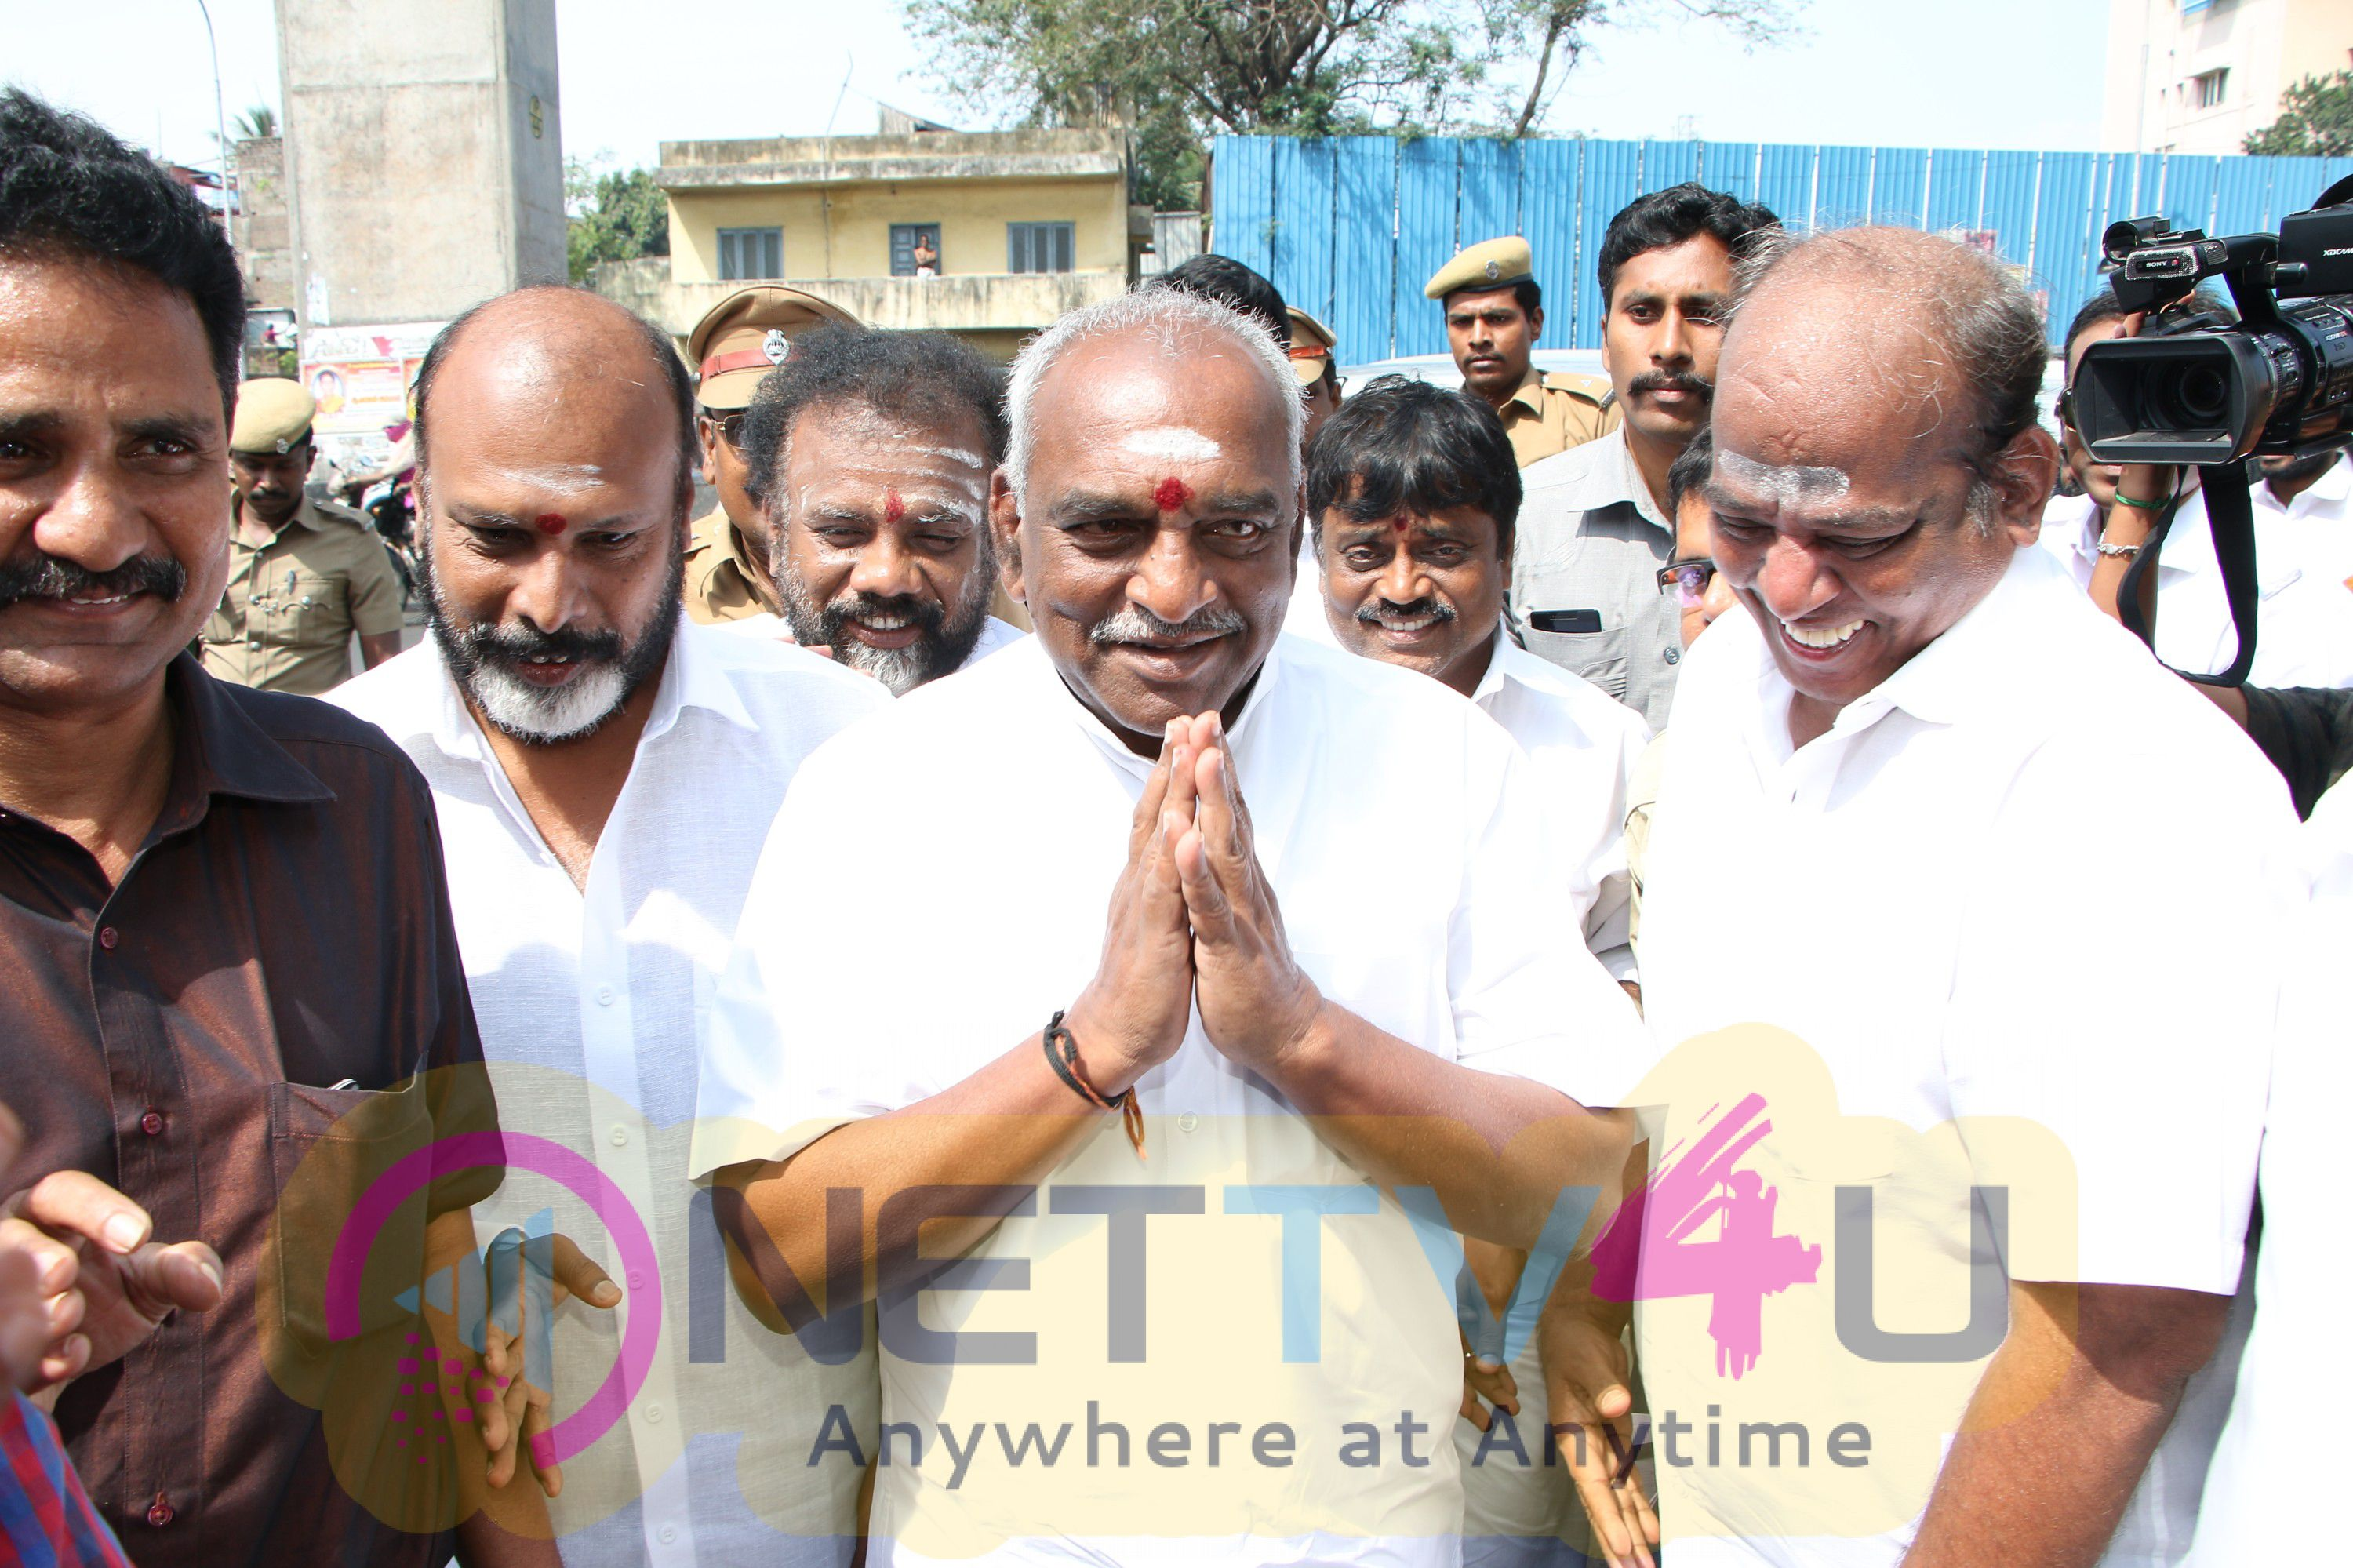 FEFSI President G.Siva Handed Over A Request Letter To Union Minister Mr. Pon Radhakrishnan Event Stills